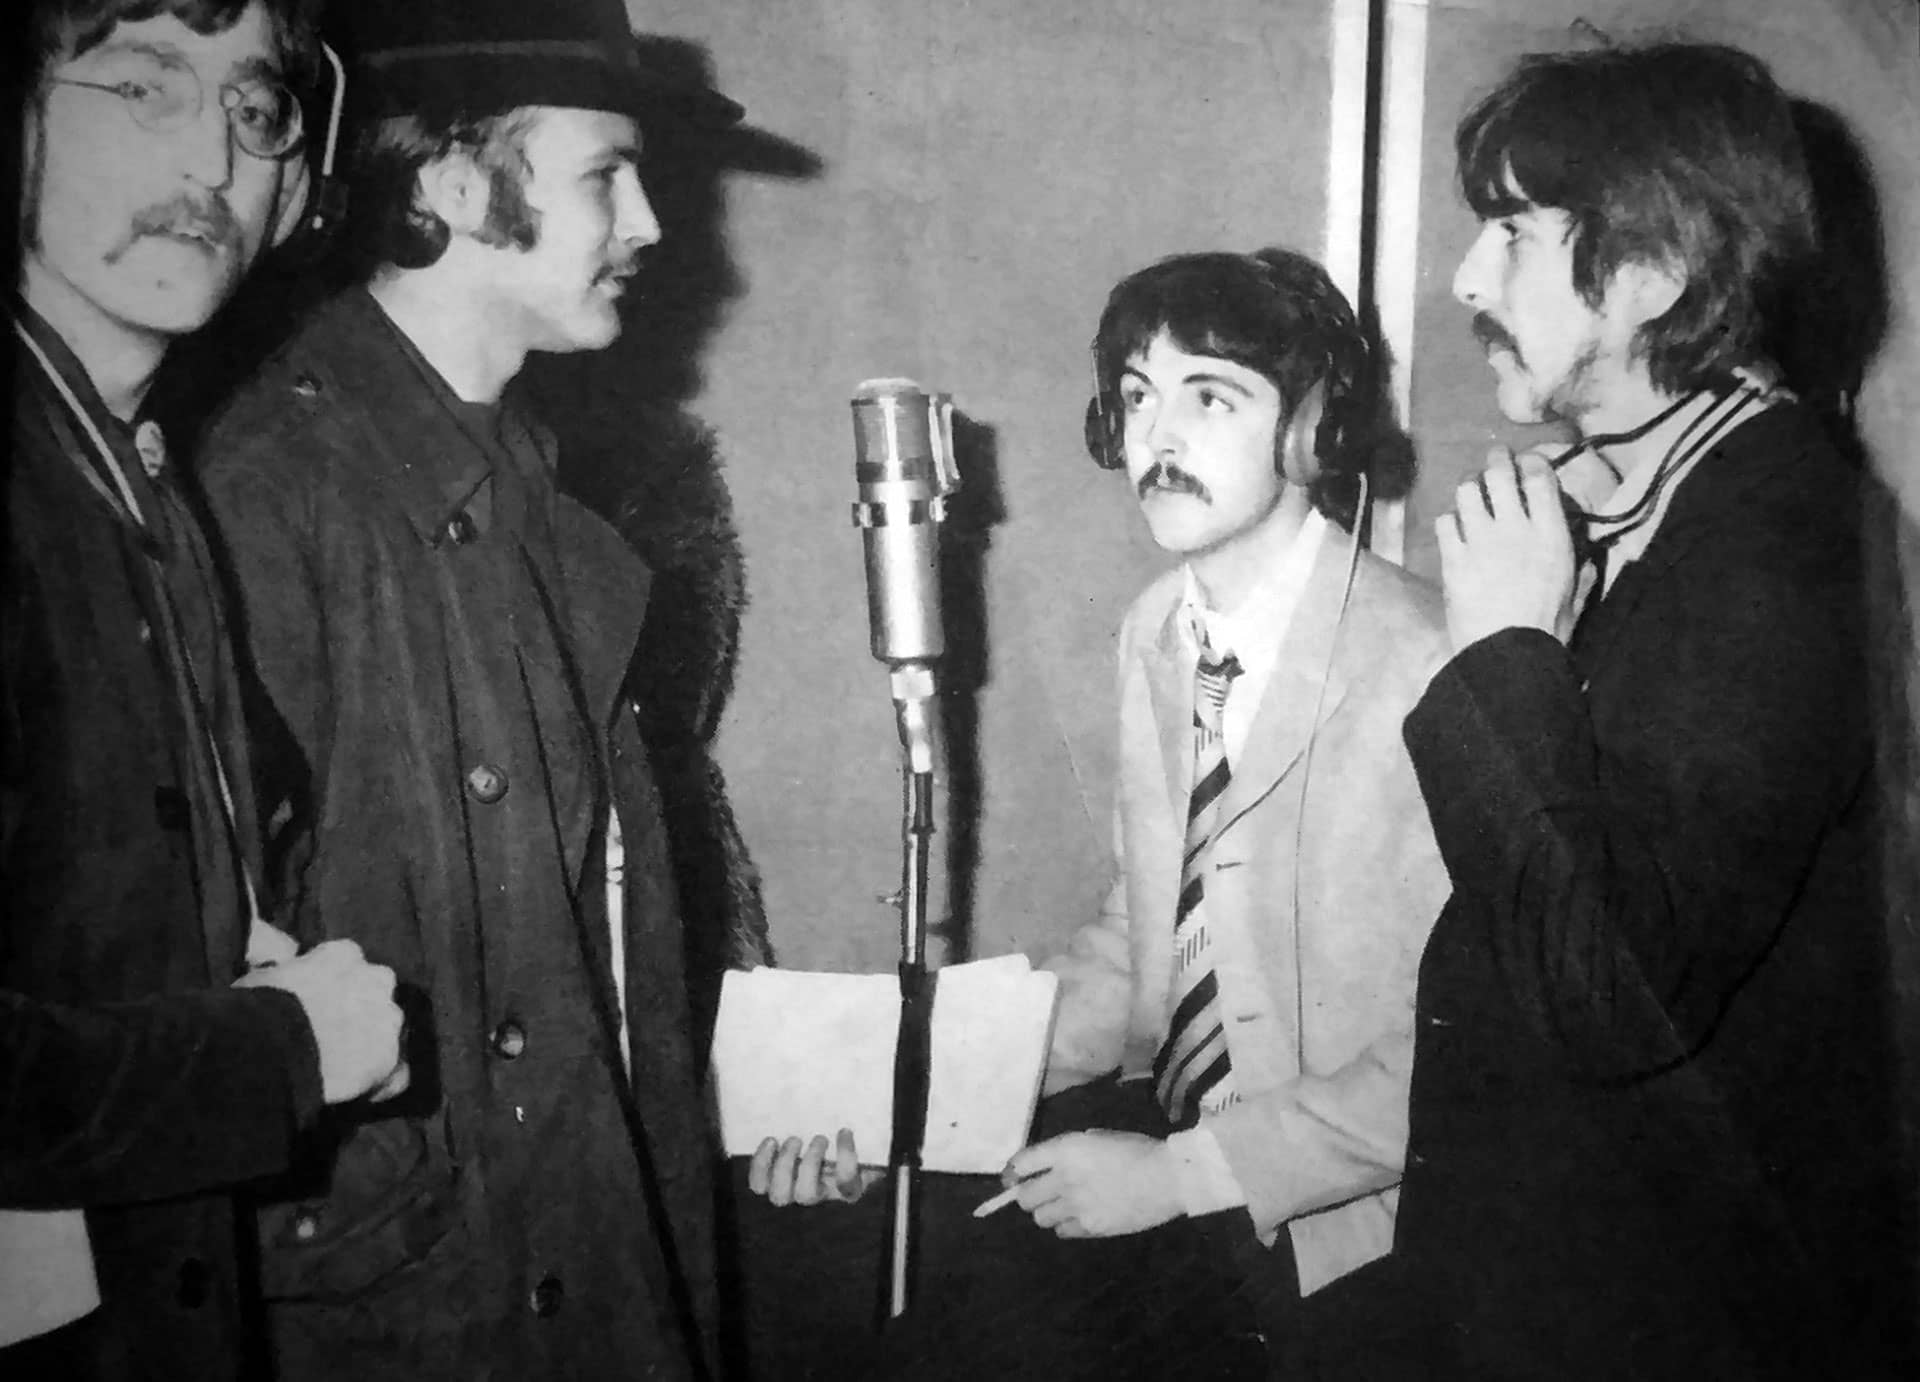 The Beatles with The Byrds' David Crosby, Abbey Road, 24 February 1967